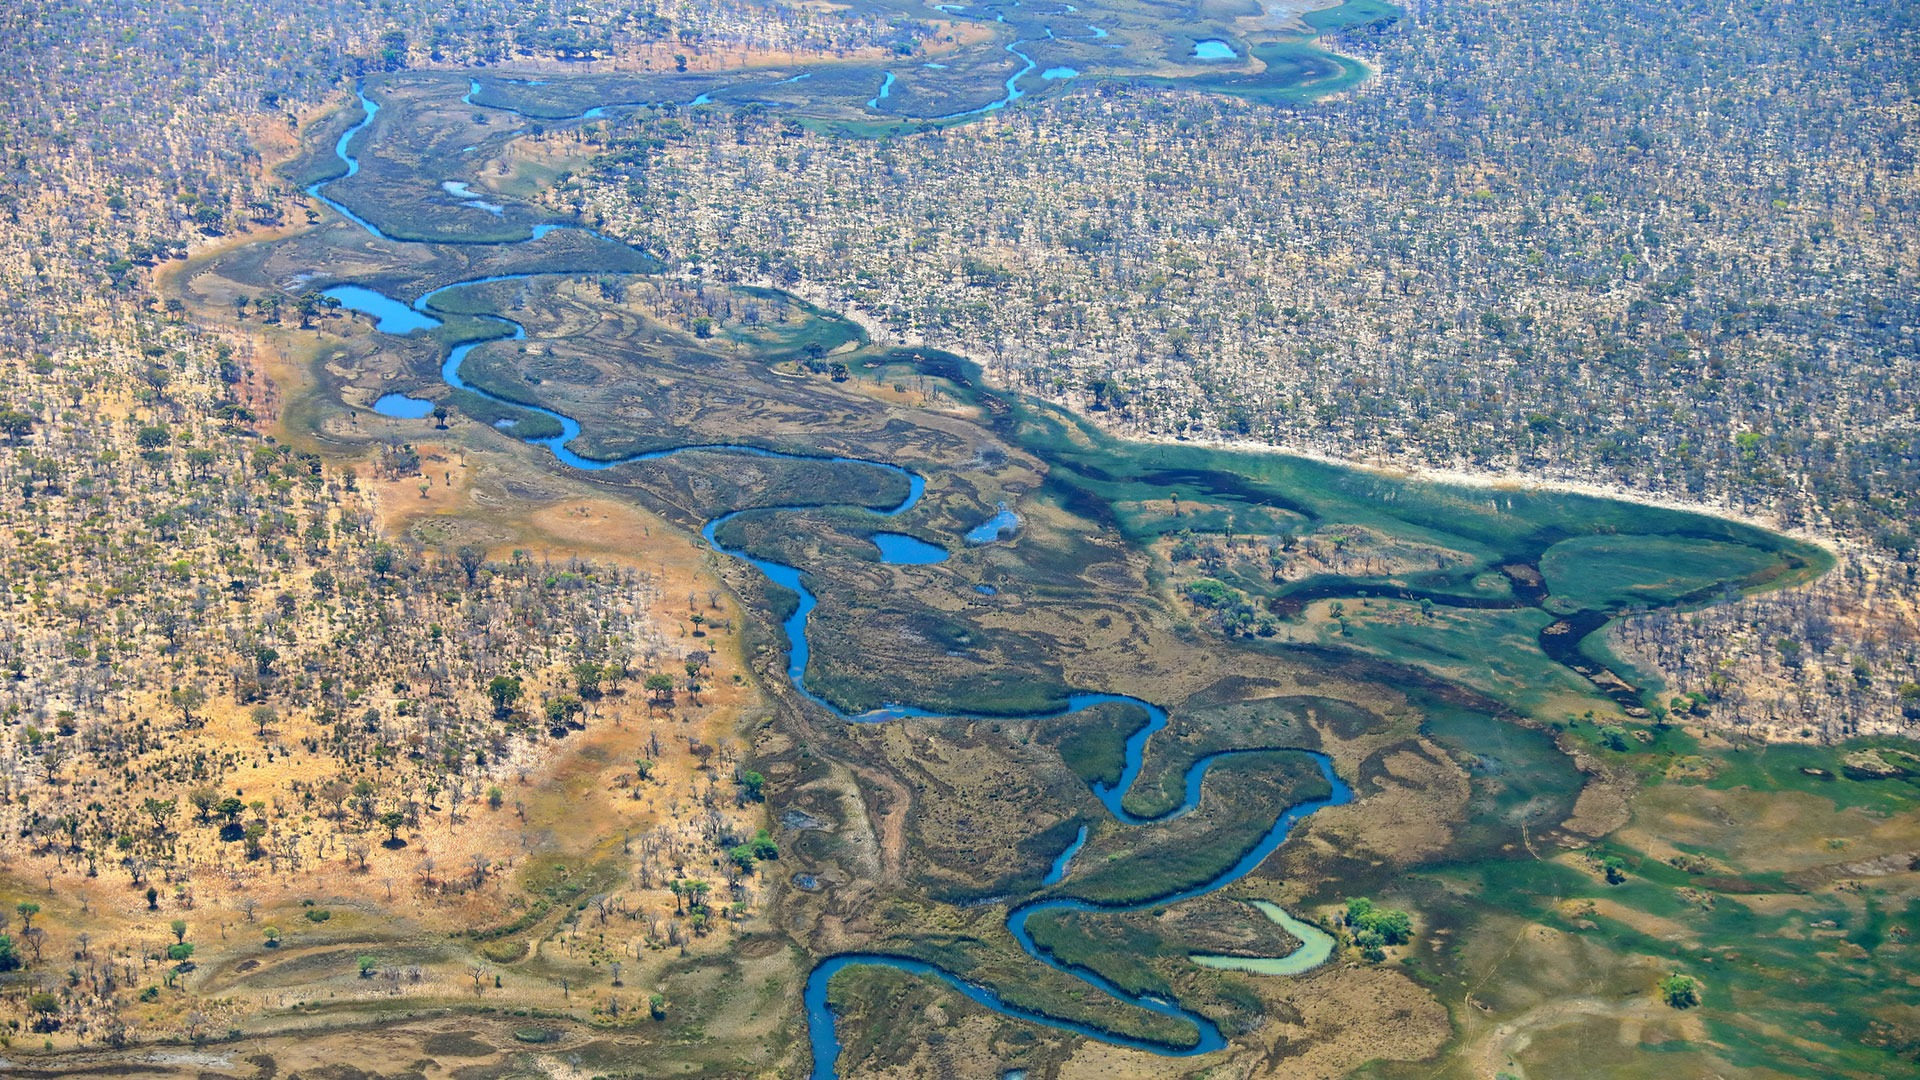 An aerial view of the woodlands and floodplains of the Cuatir Conservation Area, Angola